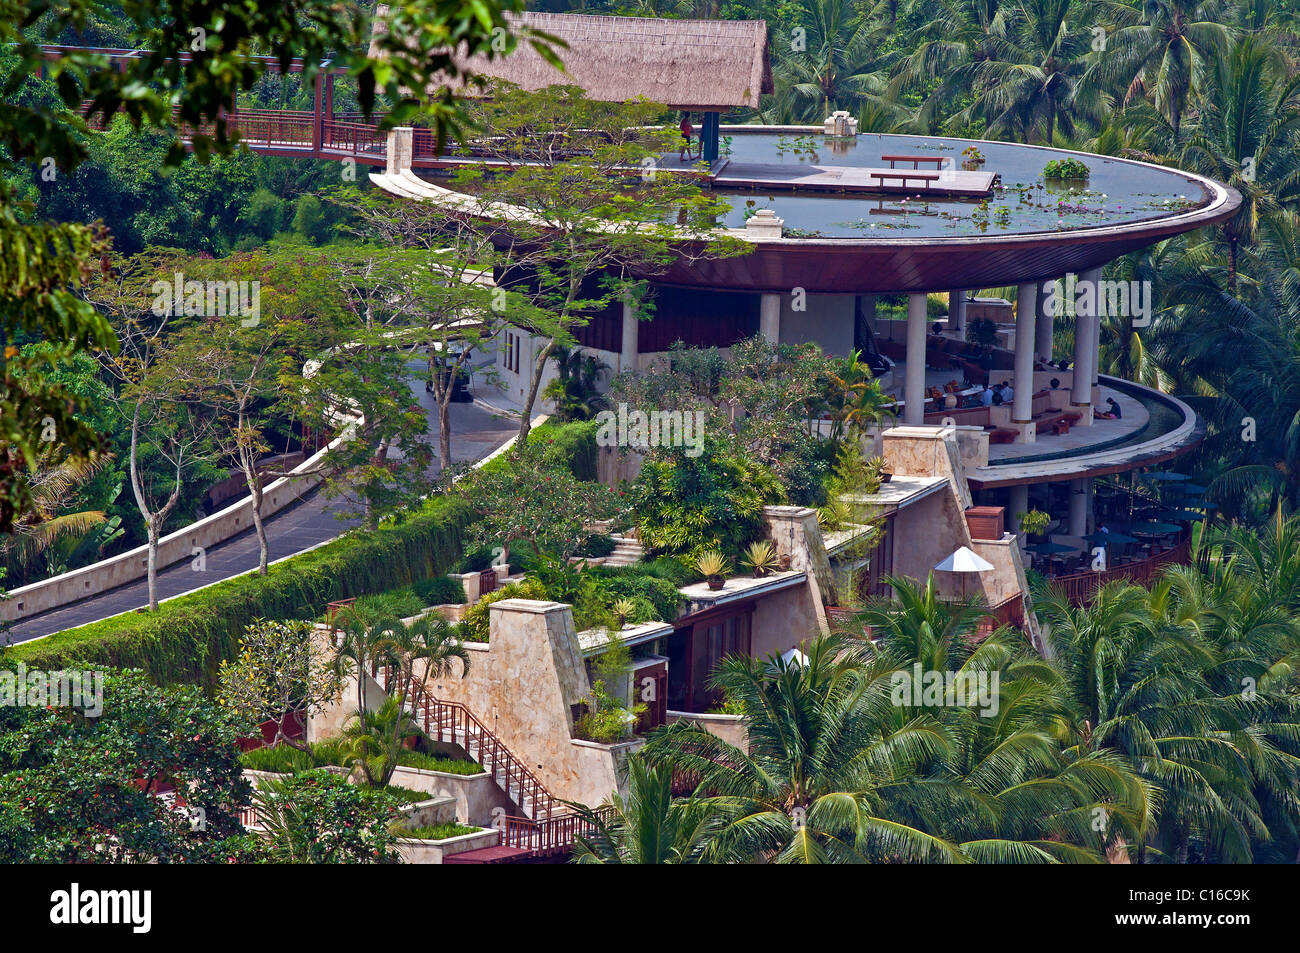 The Four Seasons Hotel set amongst the rice paddies at Sayan in Bali Stock Photo